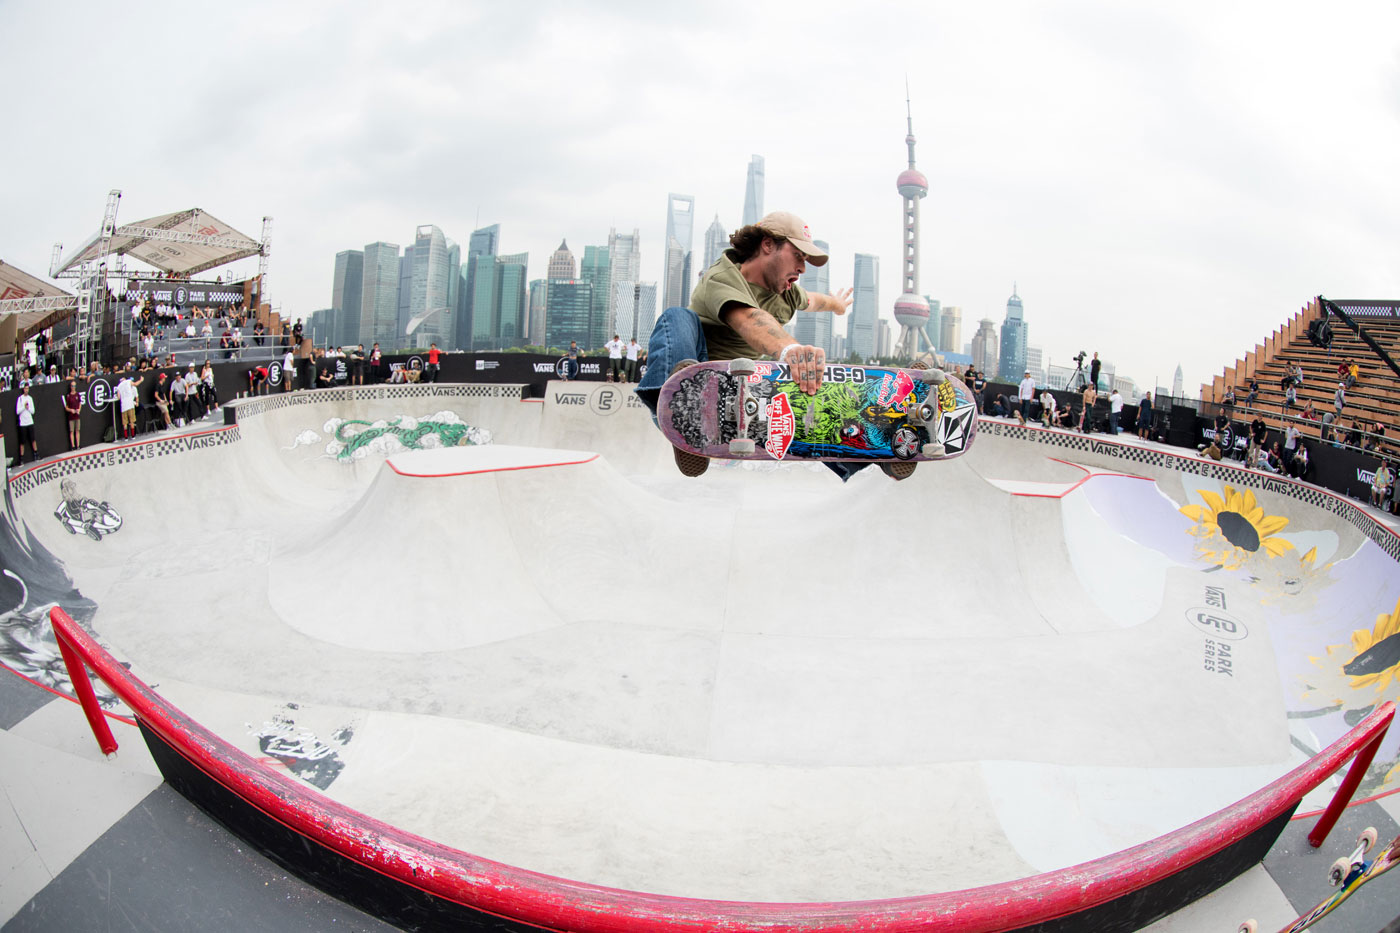 VANS PARK SERIES ANNOUNCES 2018 PRO TOUR INVITEES - Click here to see full details.